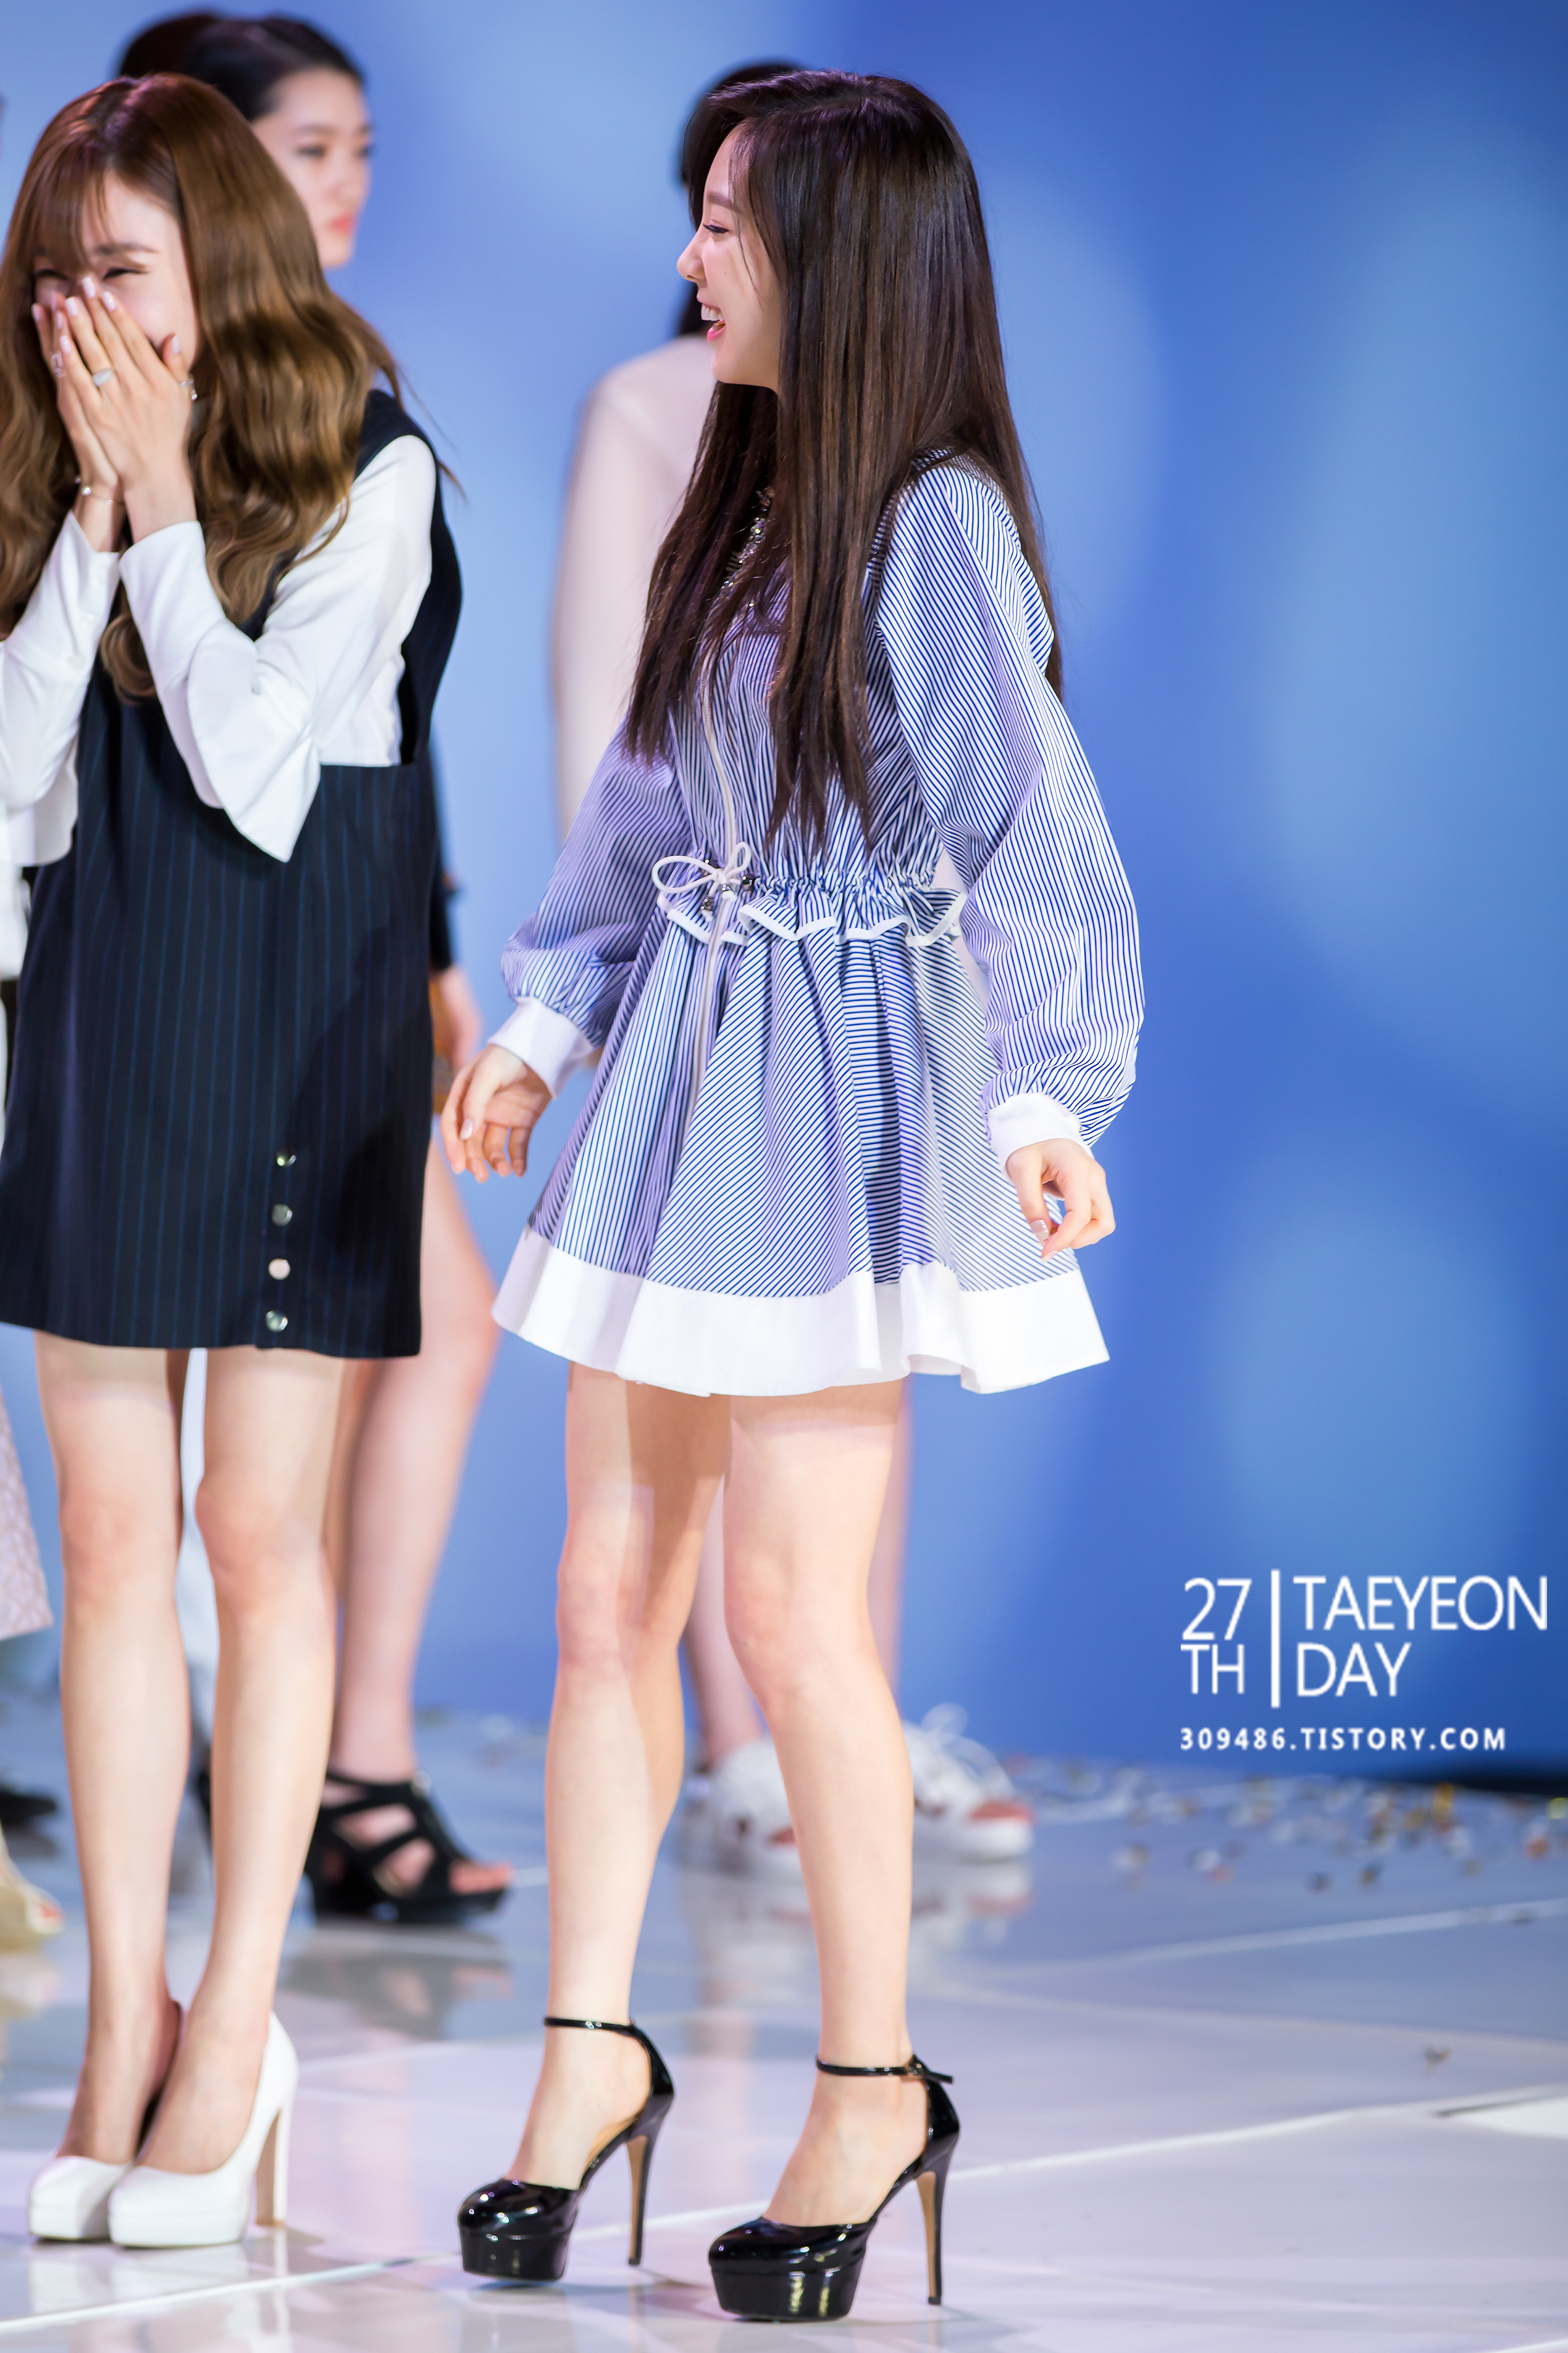 OFFICIAL Kim Taeyeon thread - Page 1153 - Individual